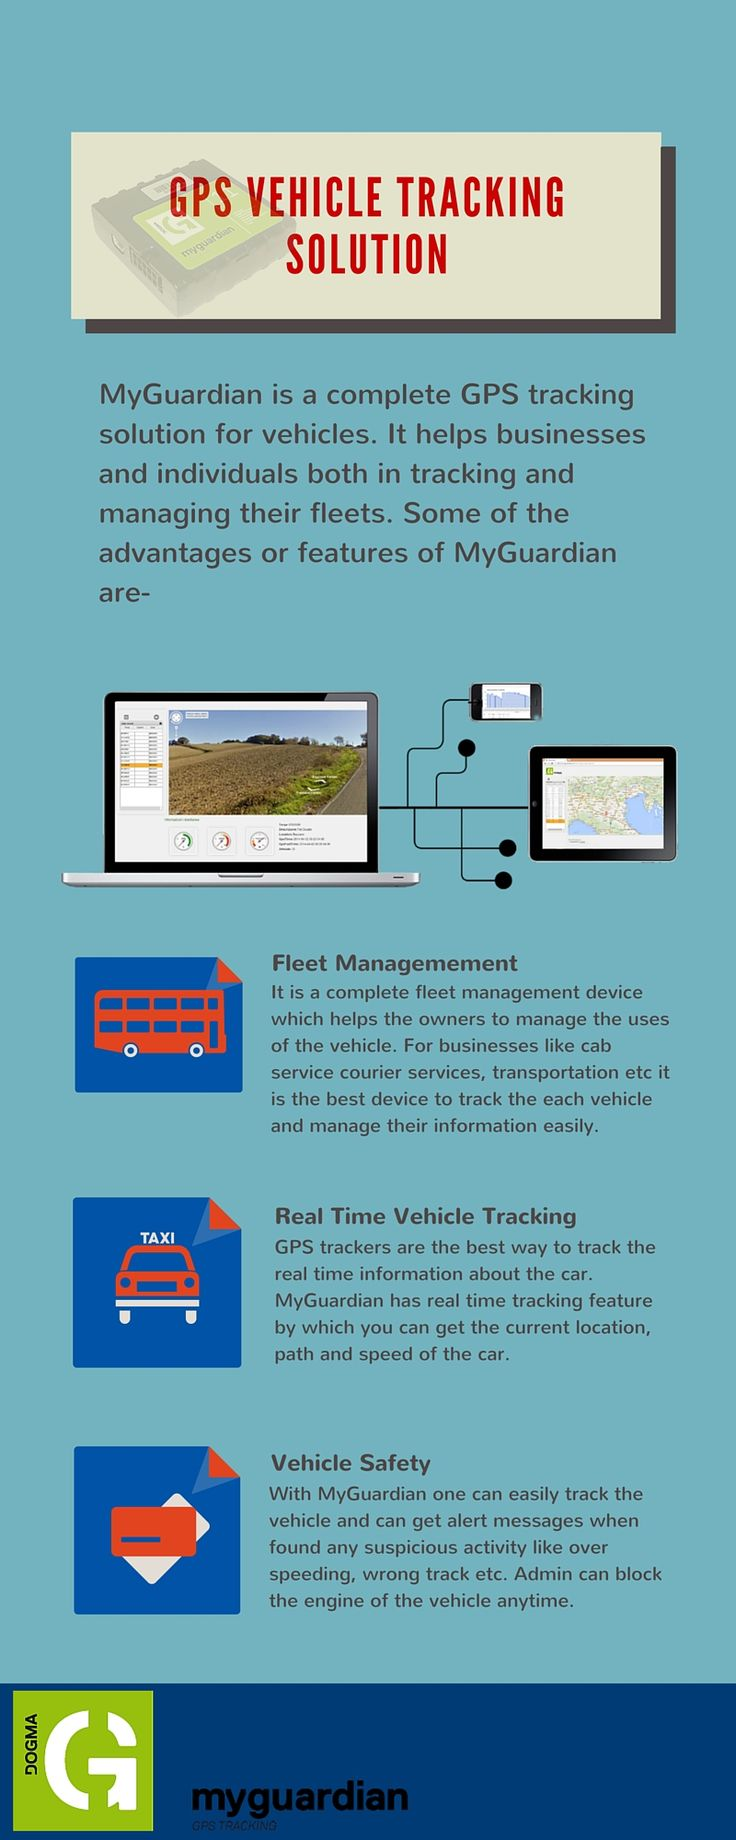 A Device Attached To The System Is Not Functioning Alluring 13 Best Gps Tracking And Fleet Management Images On Pinterest Design Inspiration